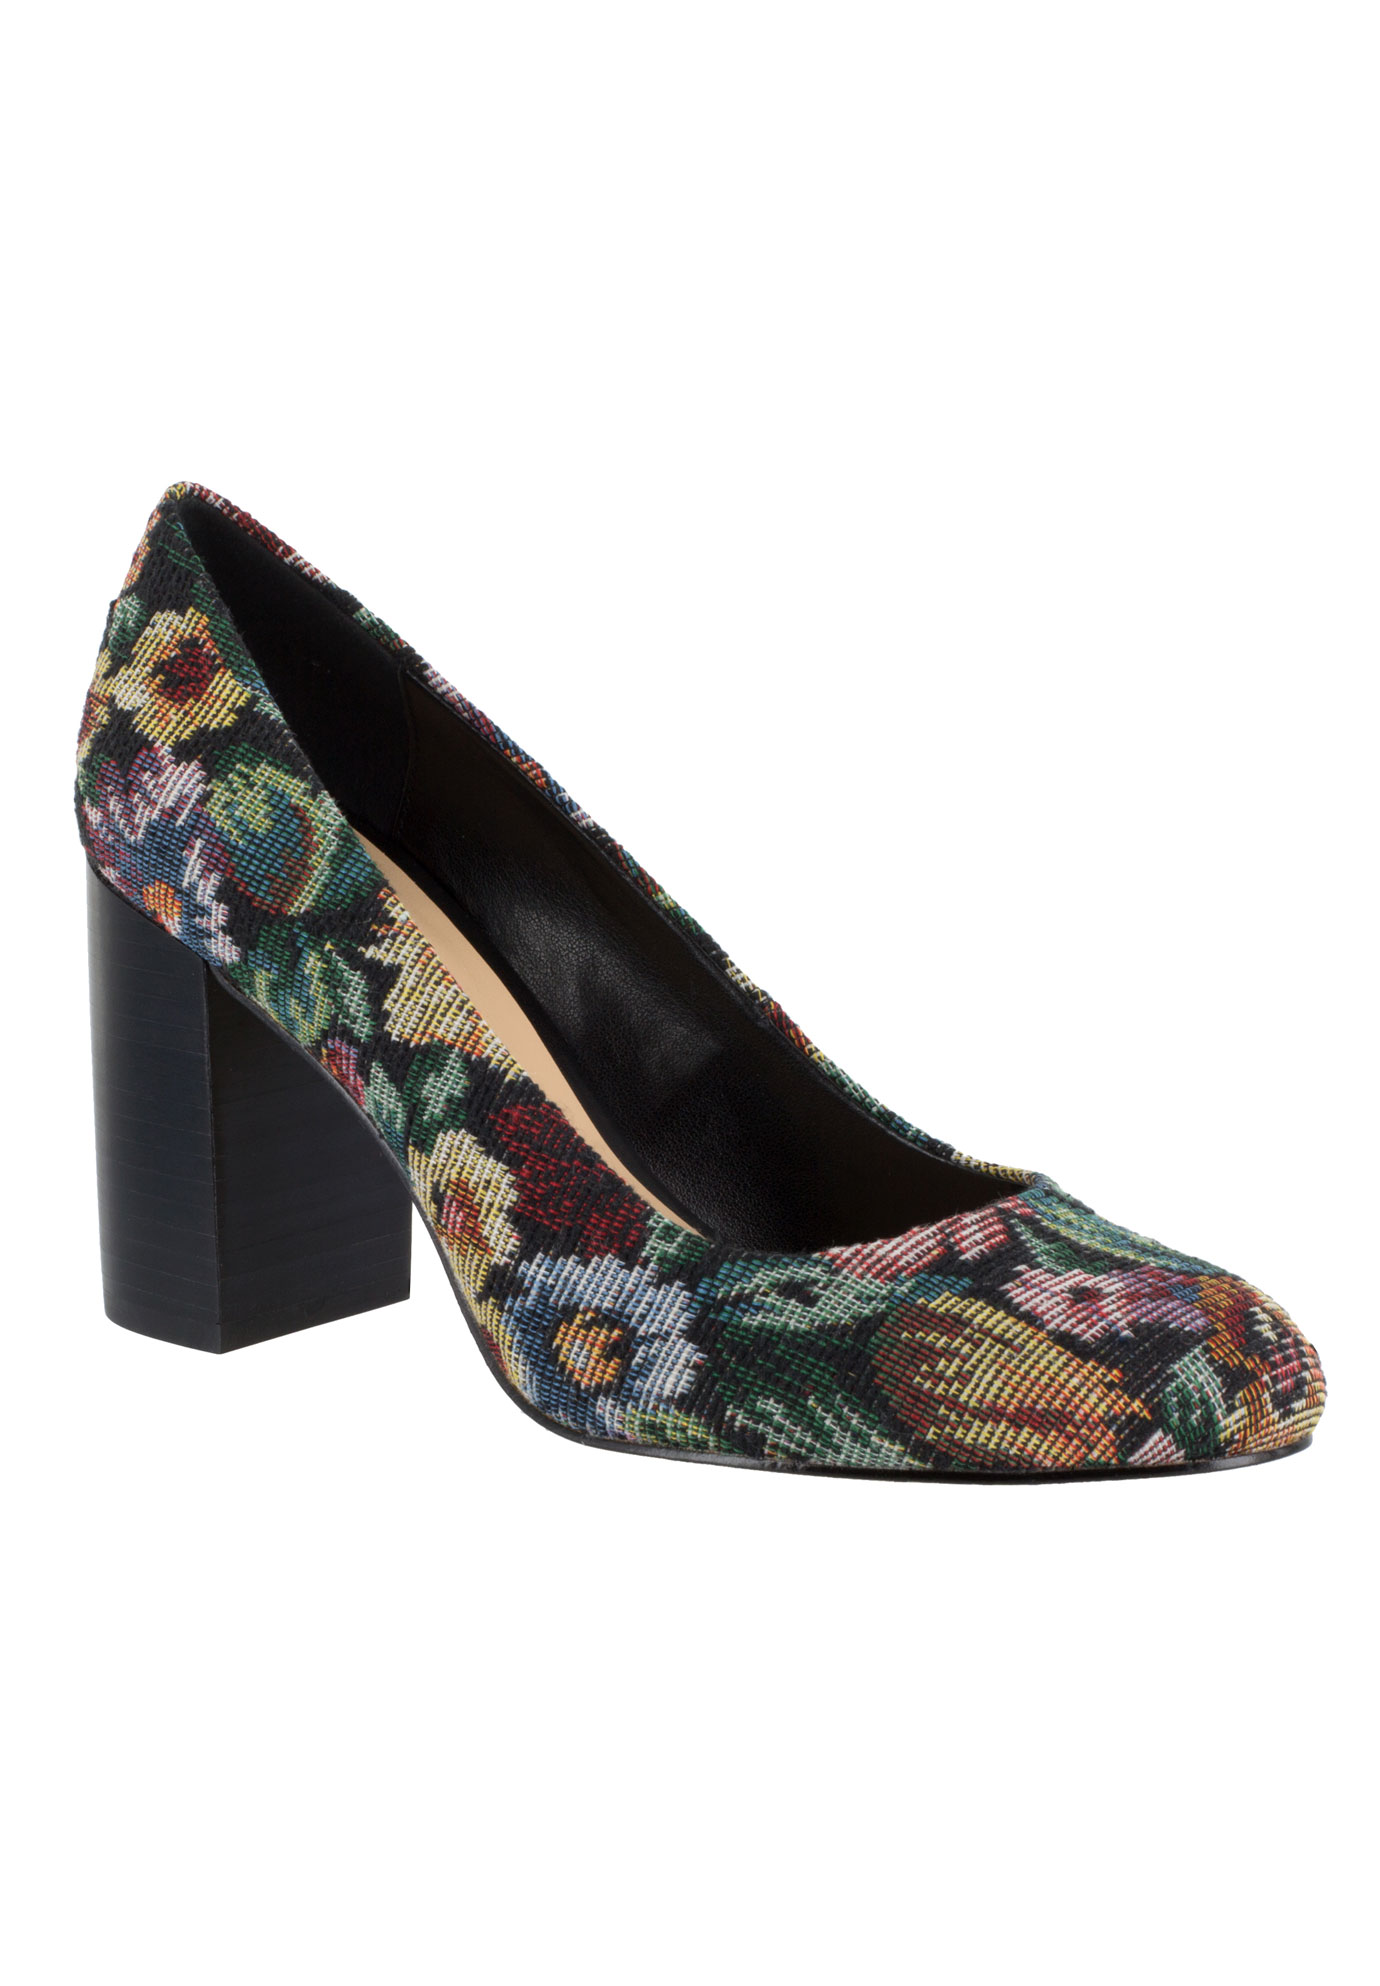 Nara Leather Pump by Bella Vita®, TAPESTRY, hi-res